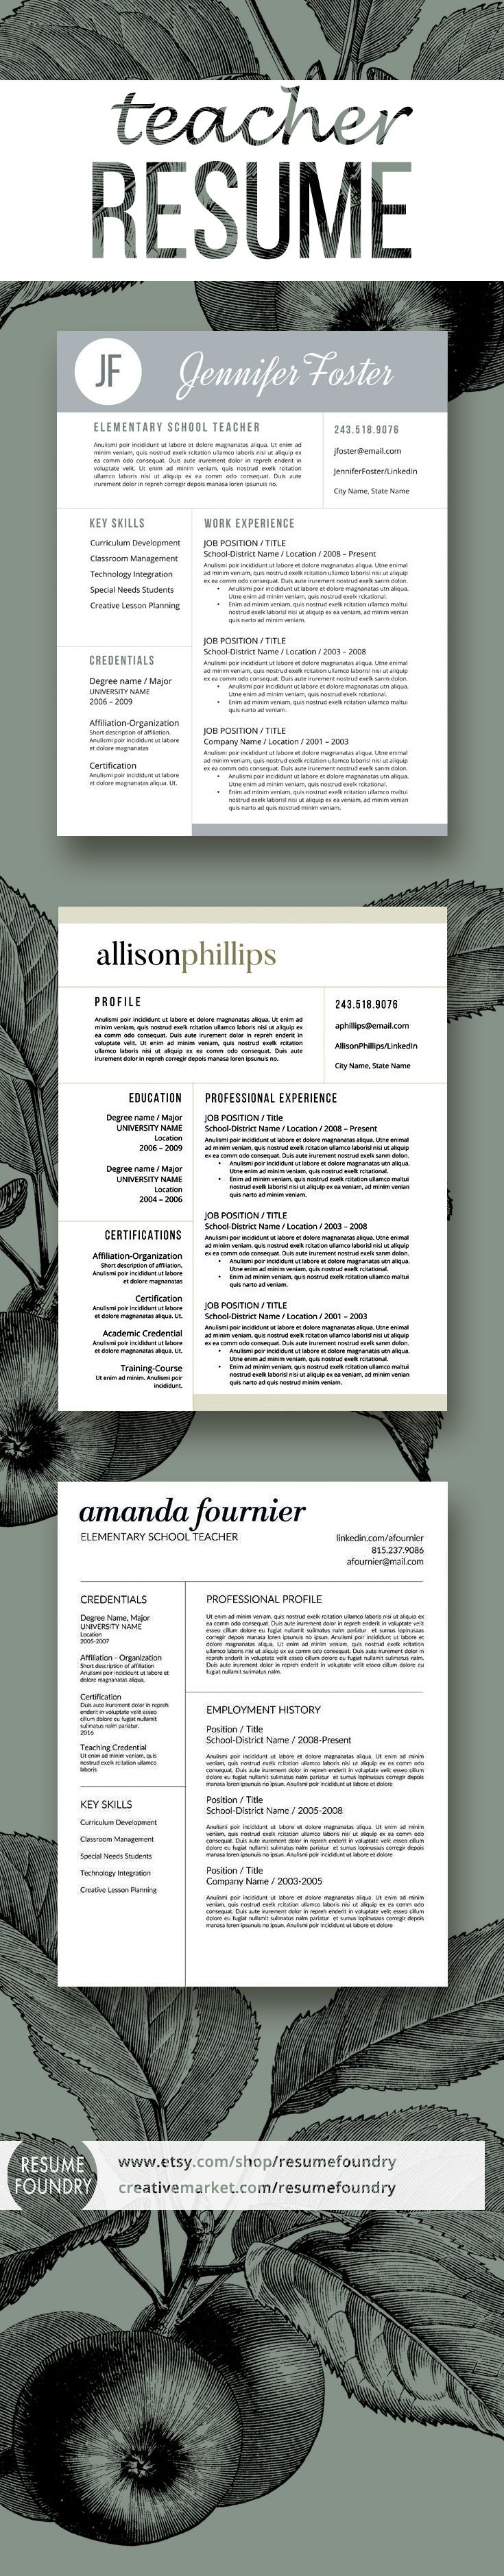 selection of great teacher resumes simple clean easy to use - Great Teacher Resume